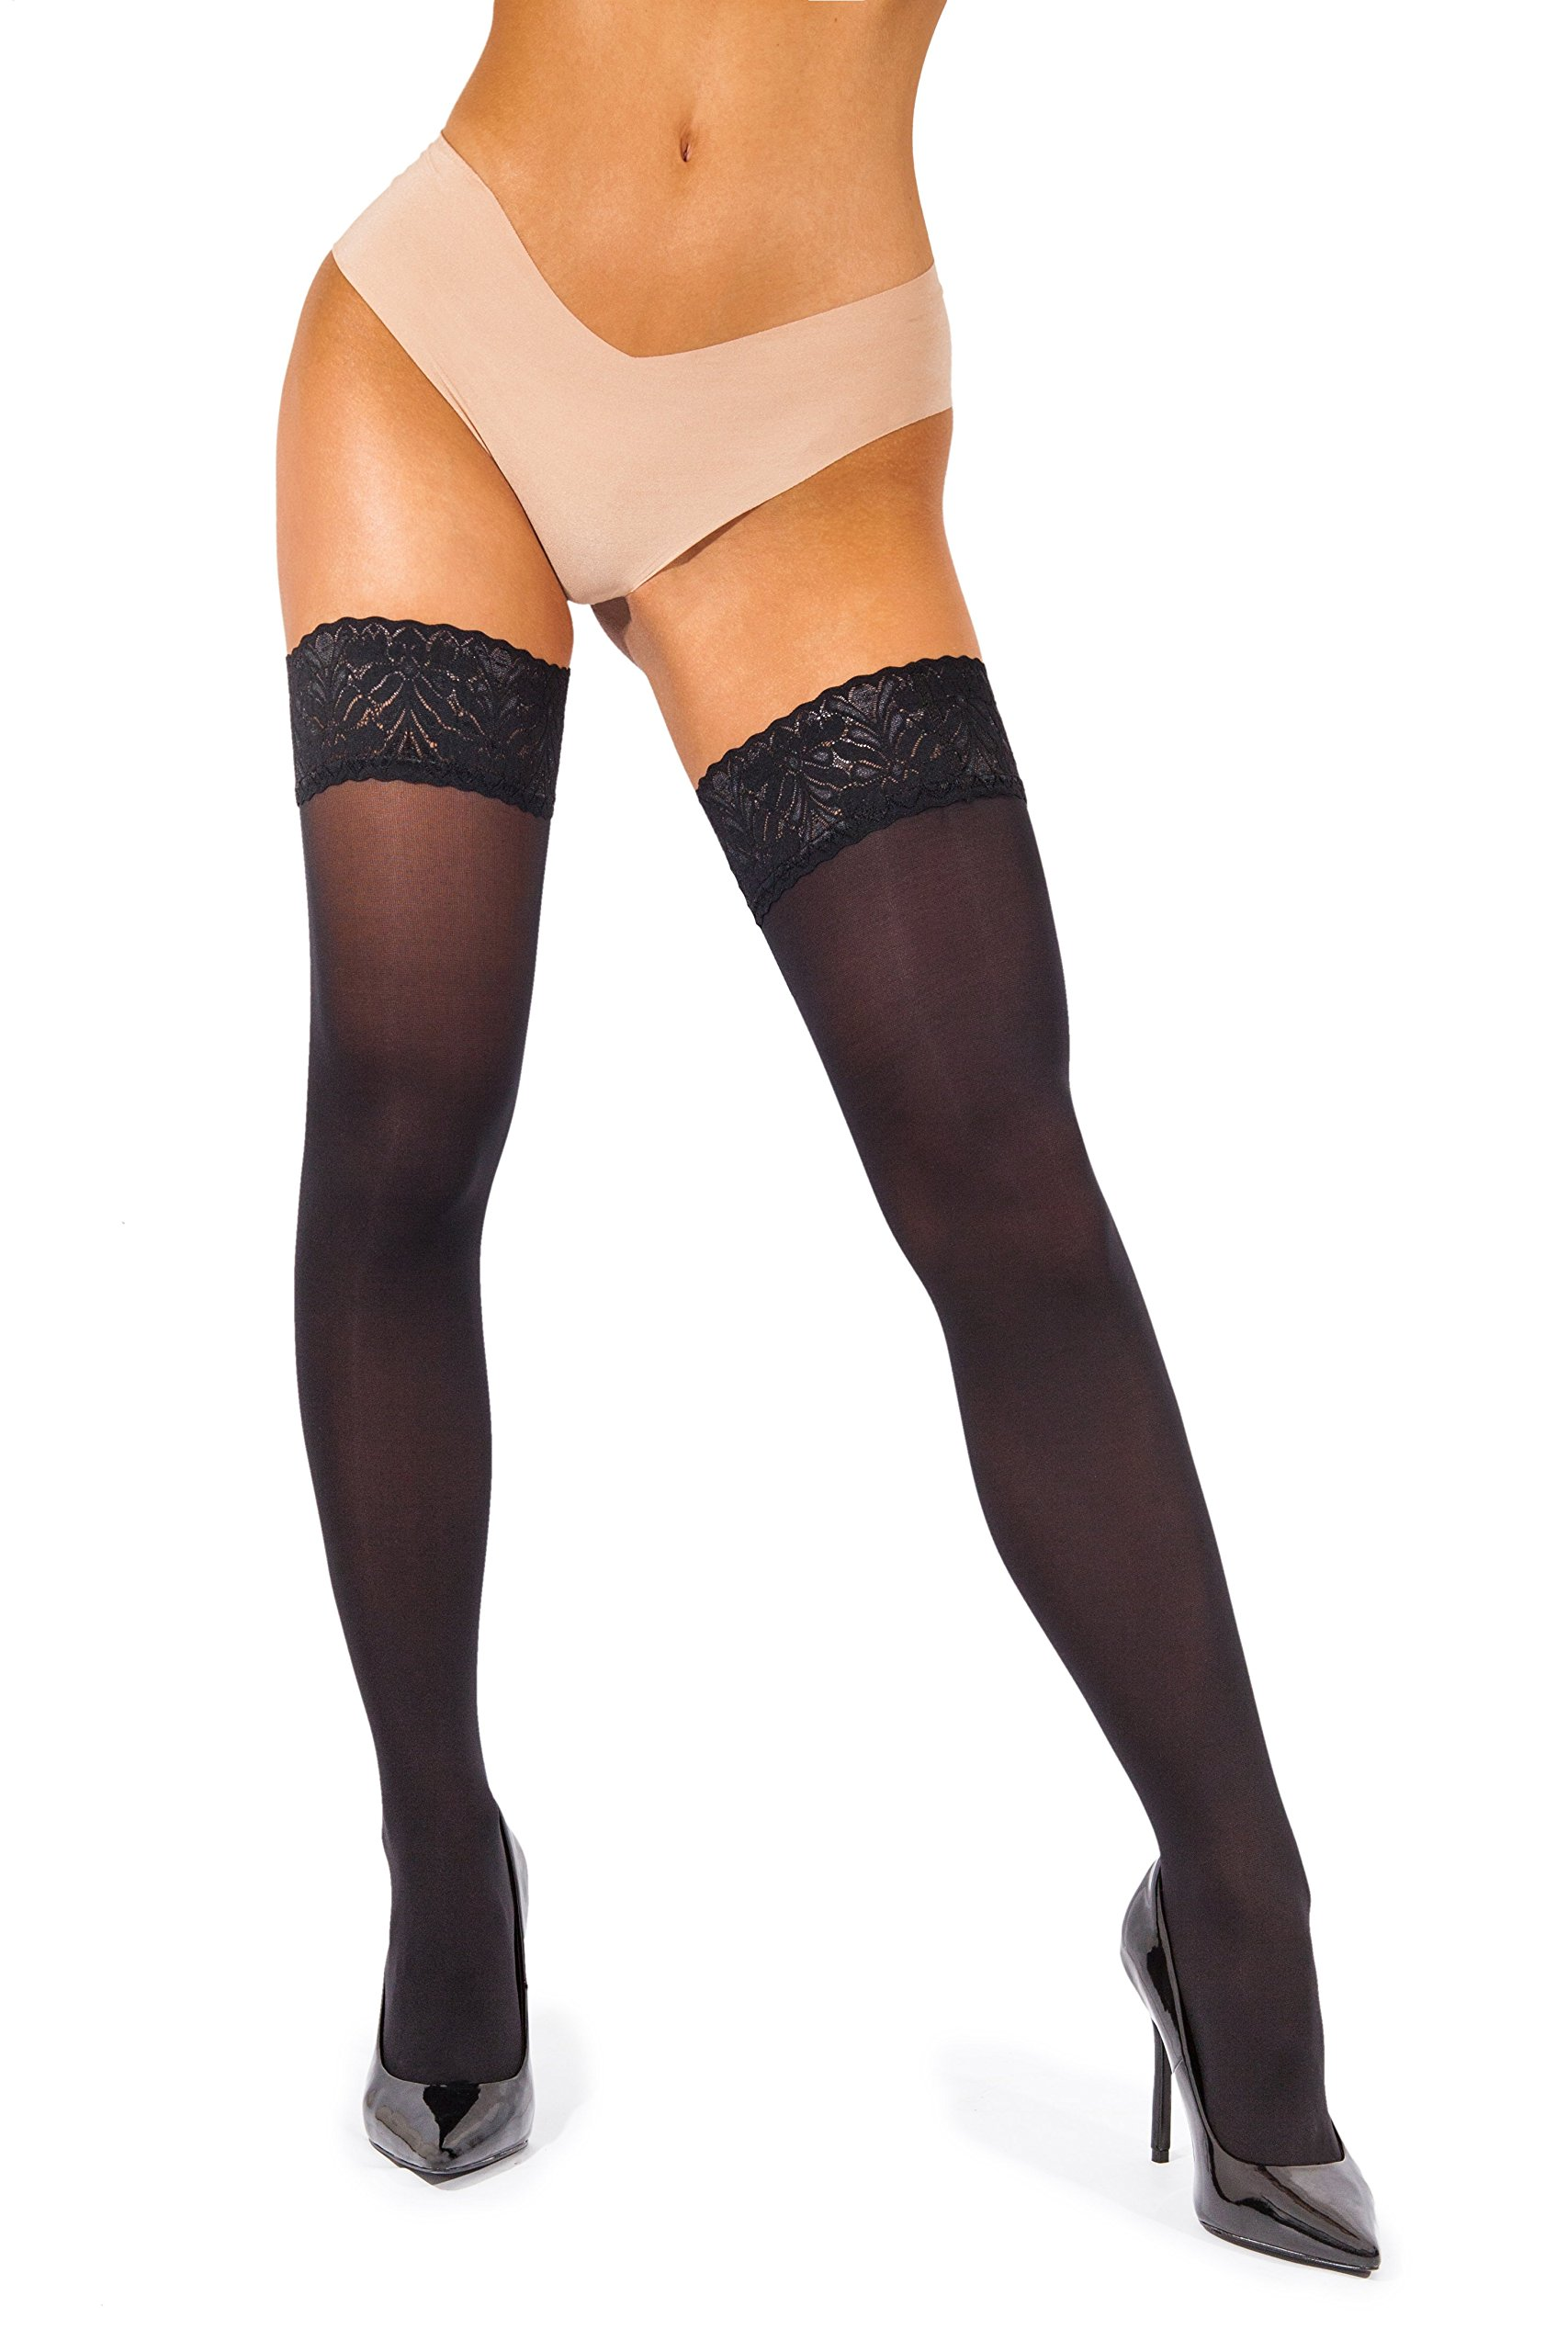 9546cffe8d0 sofsy Lace Thigh High Stockings for Women - Hold Up Nylon Pantyhose 60 Den   Made